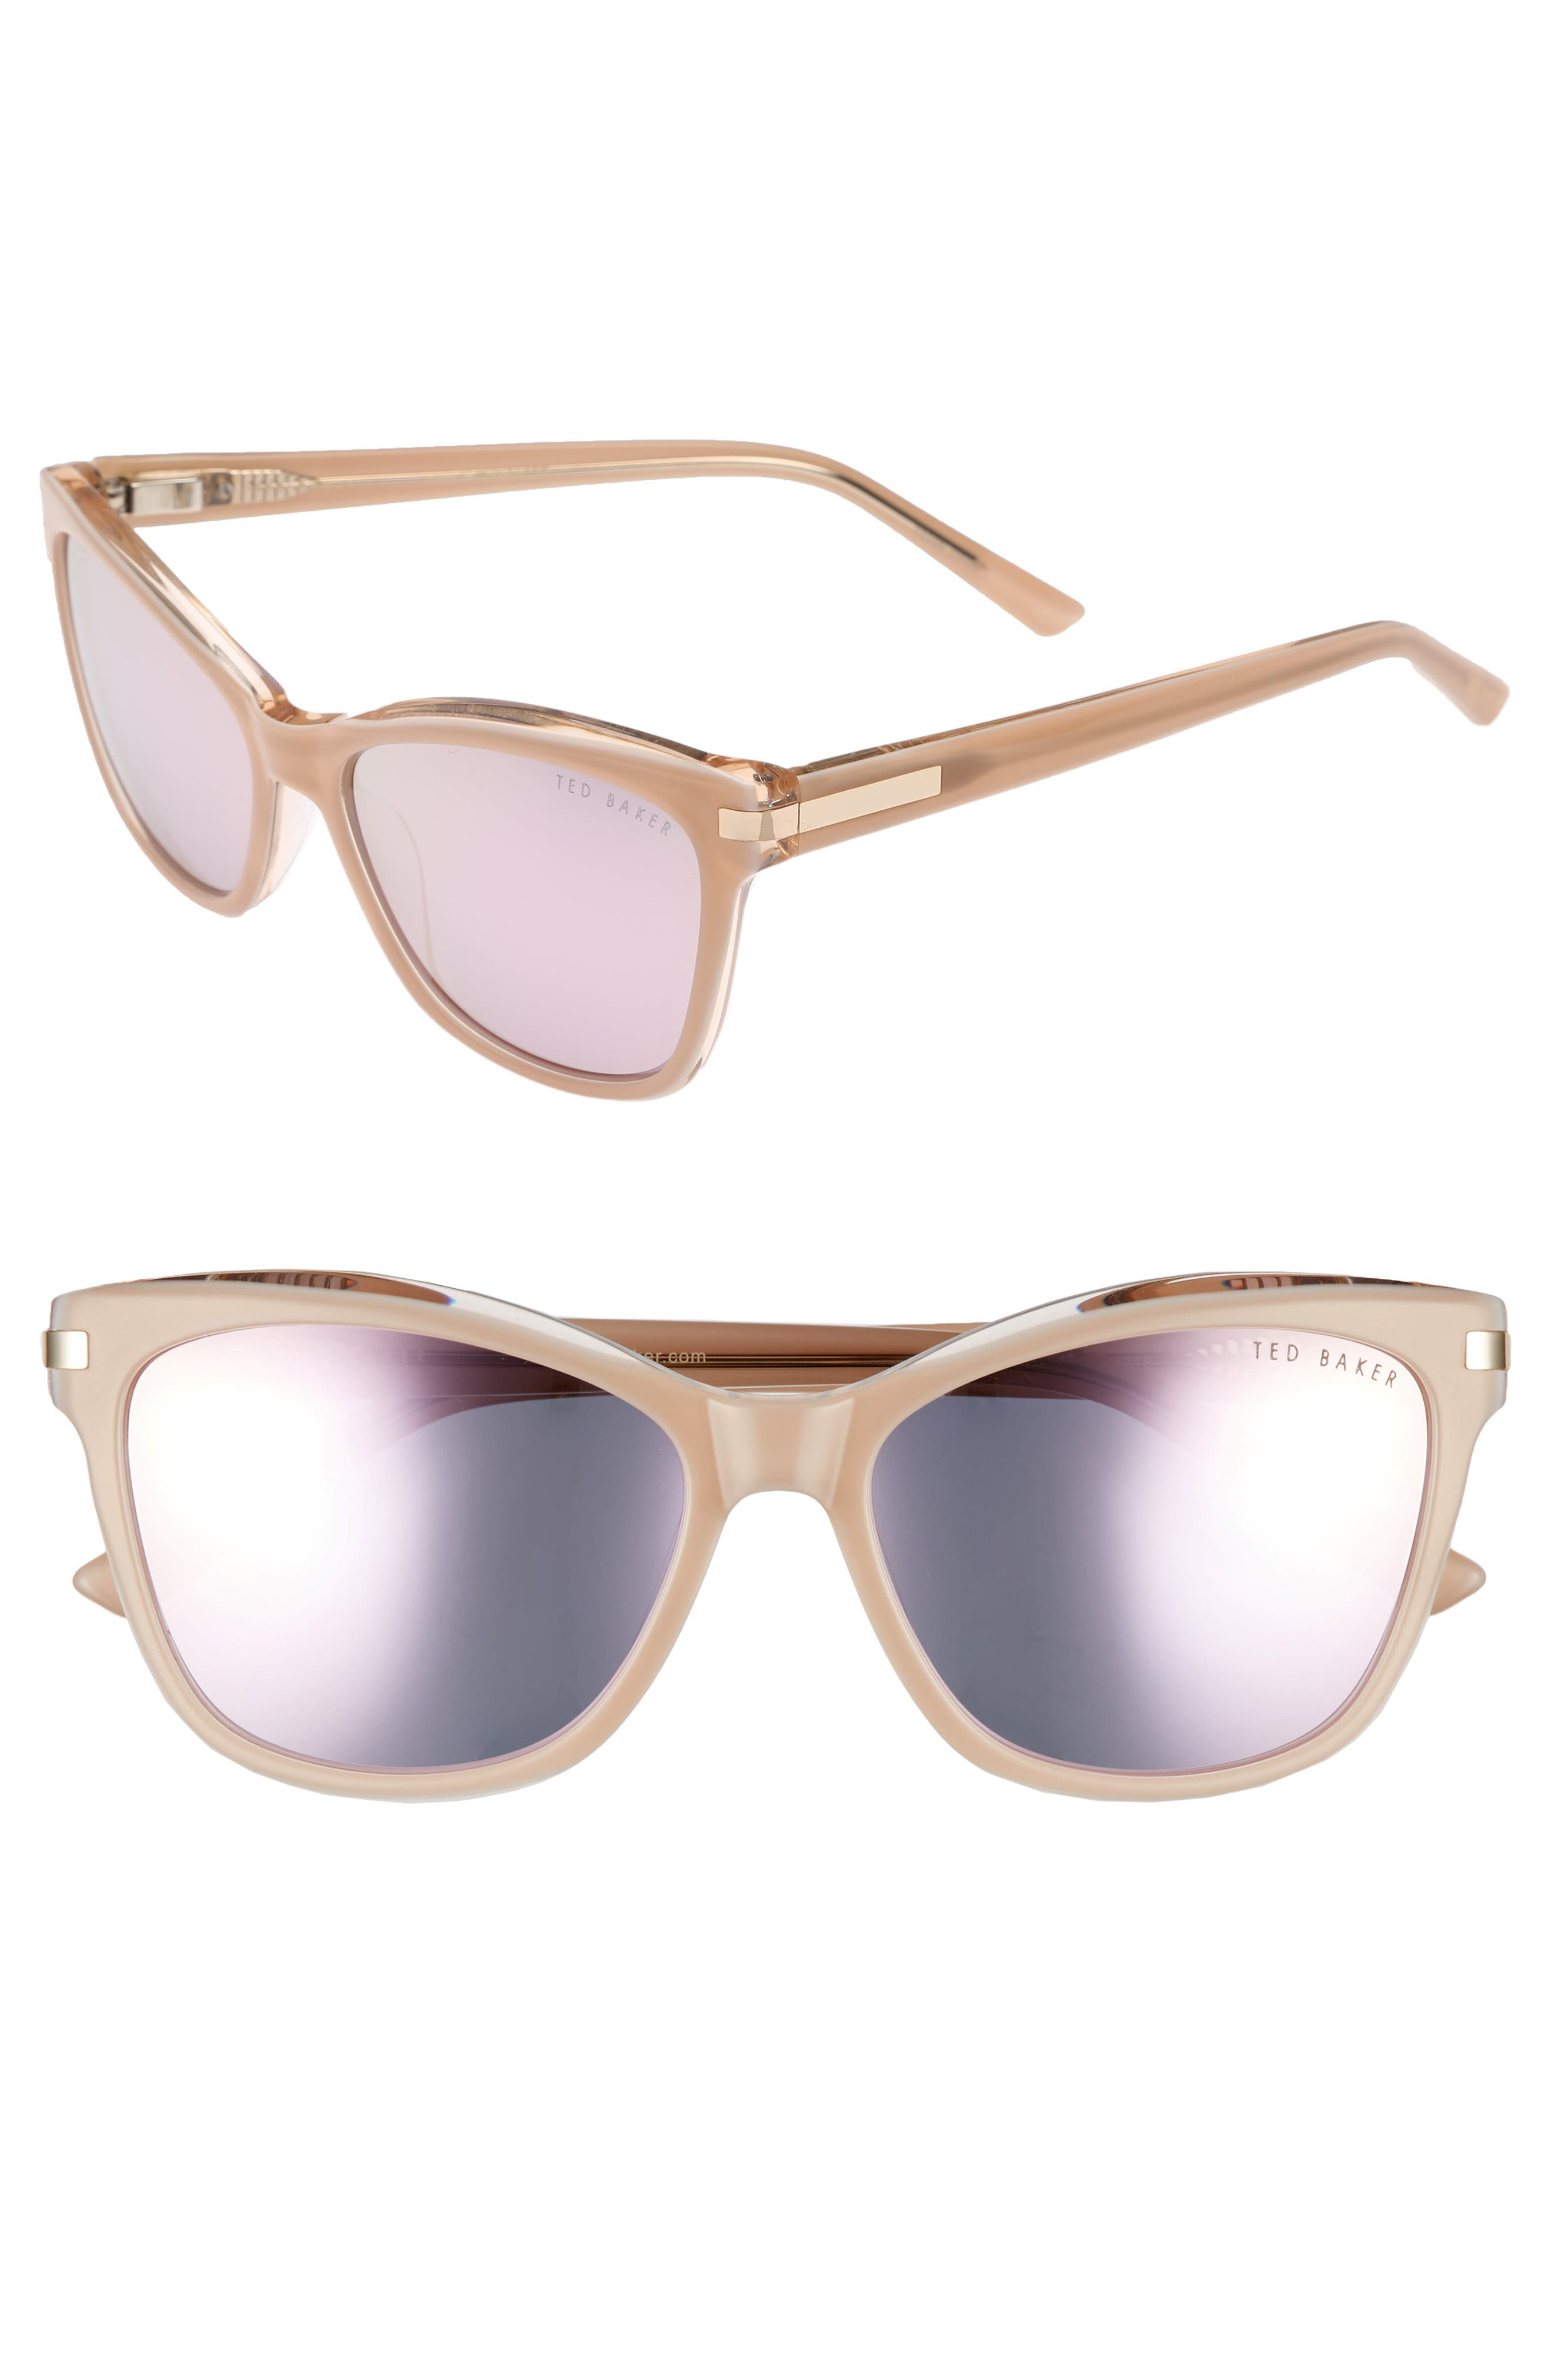 Main Image - Ted Baker London 56mm Cat Eye Sunglasses